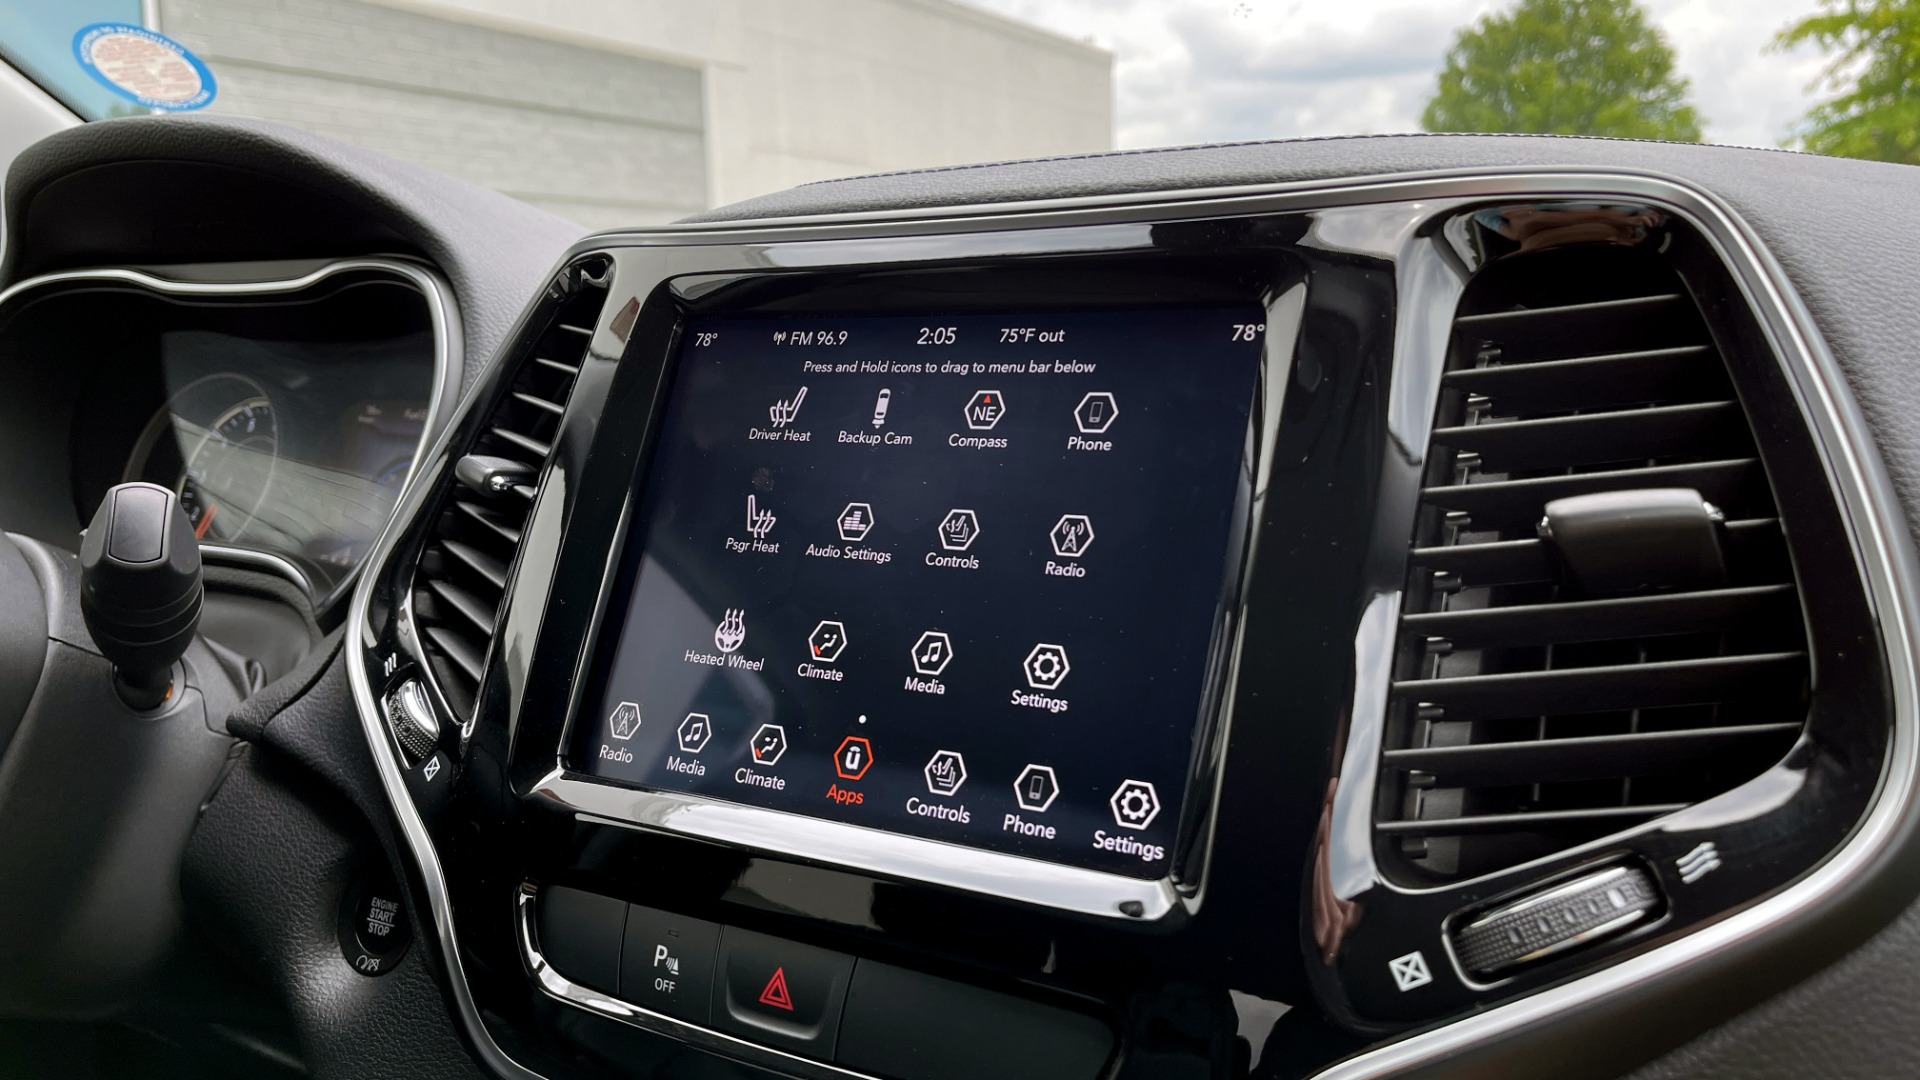 Used 2019 Jeep CHEROKEE LIMITED 4X4 / KEYLESS-GO / BLIND SPOT AND CROSS PATH / REMOTE START / REARV for sale $26,995 at Formula Imports in Charlotte NC 28227 54